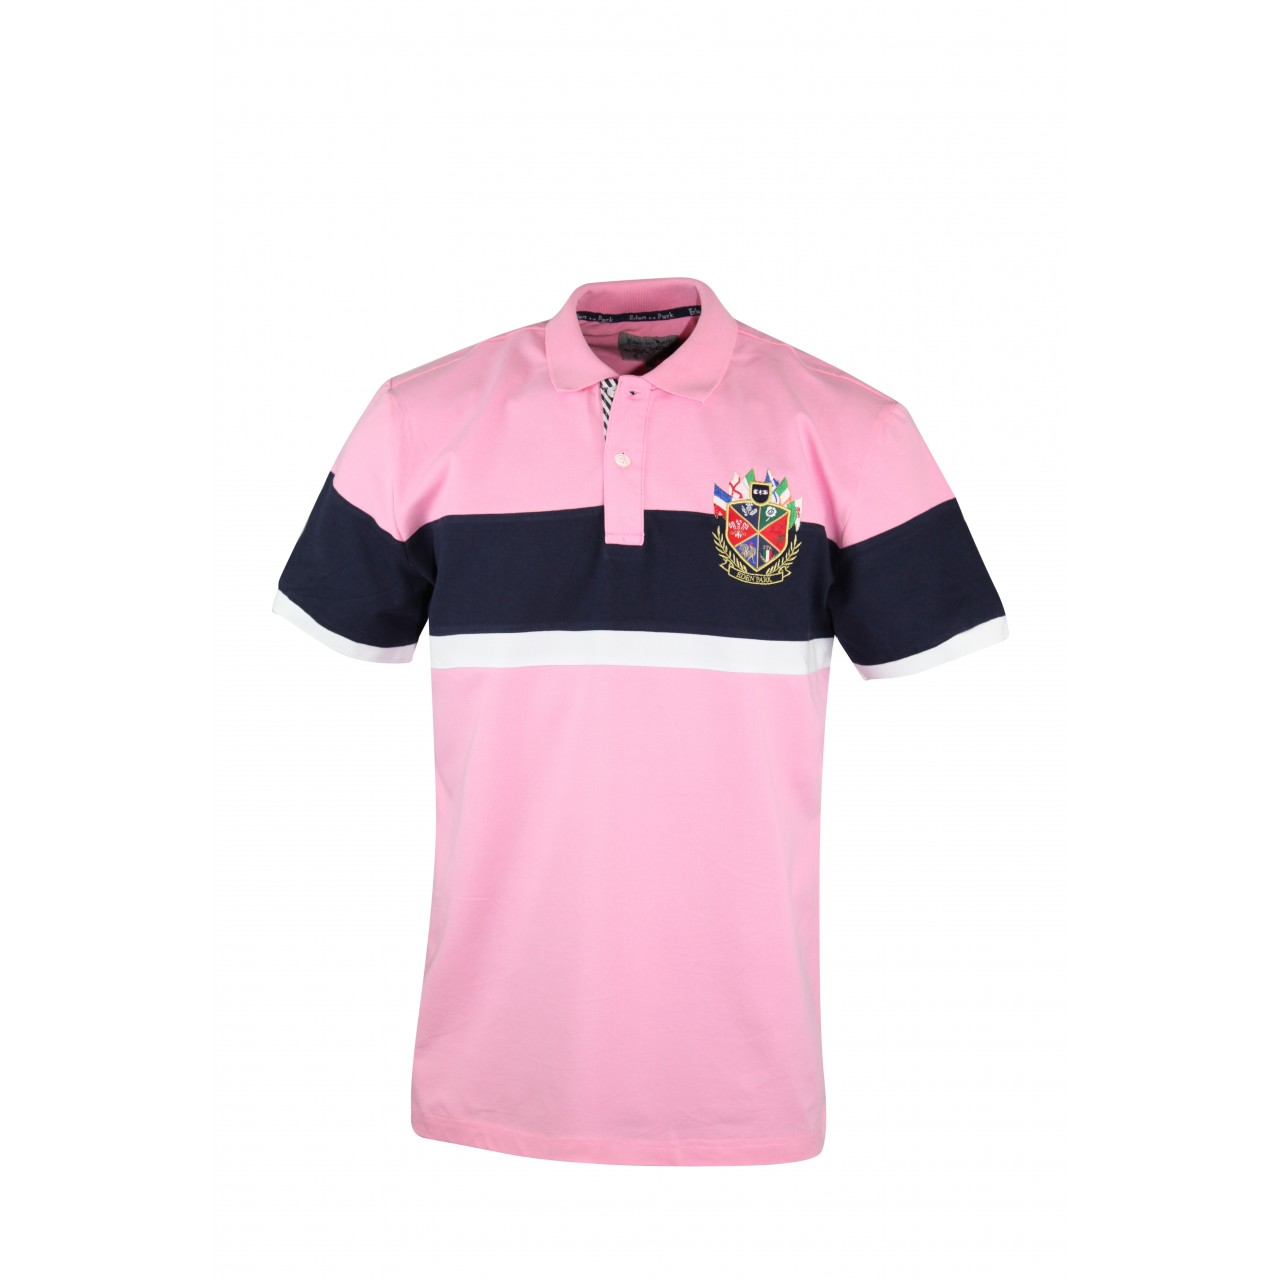 Men's Double-Color Lite Rose Collared Tees